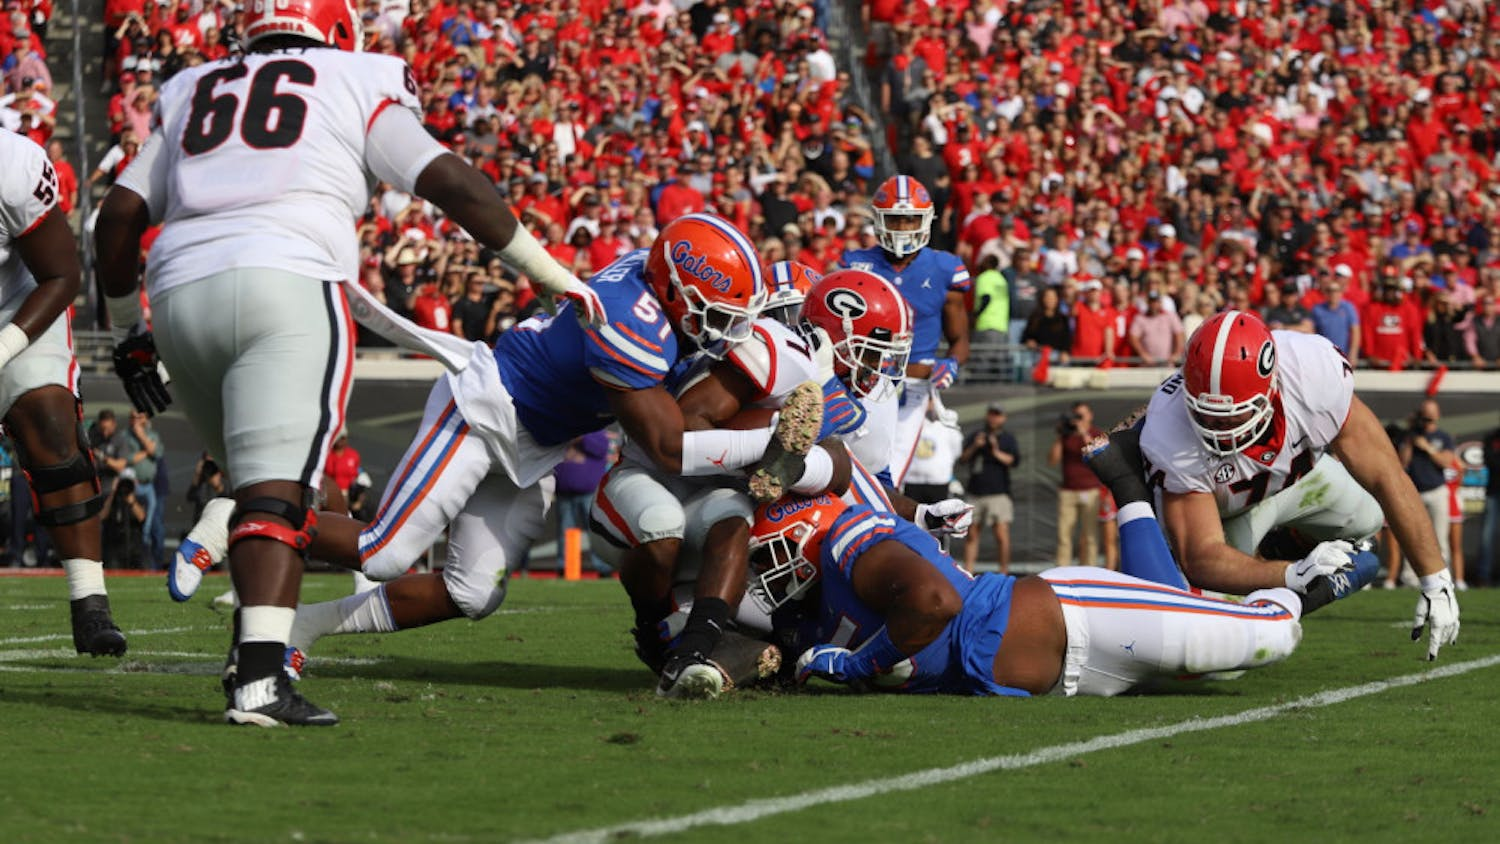 Linebacker Ventrell Miller and his teammates tackle a Georgia ball carrier.